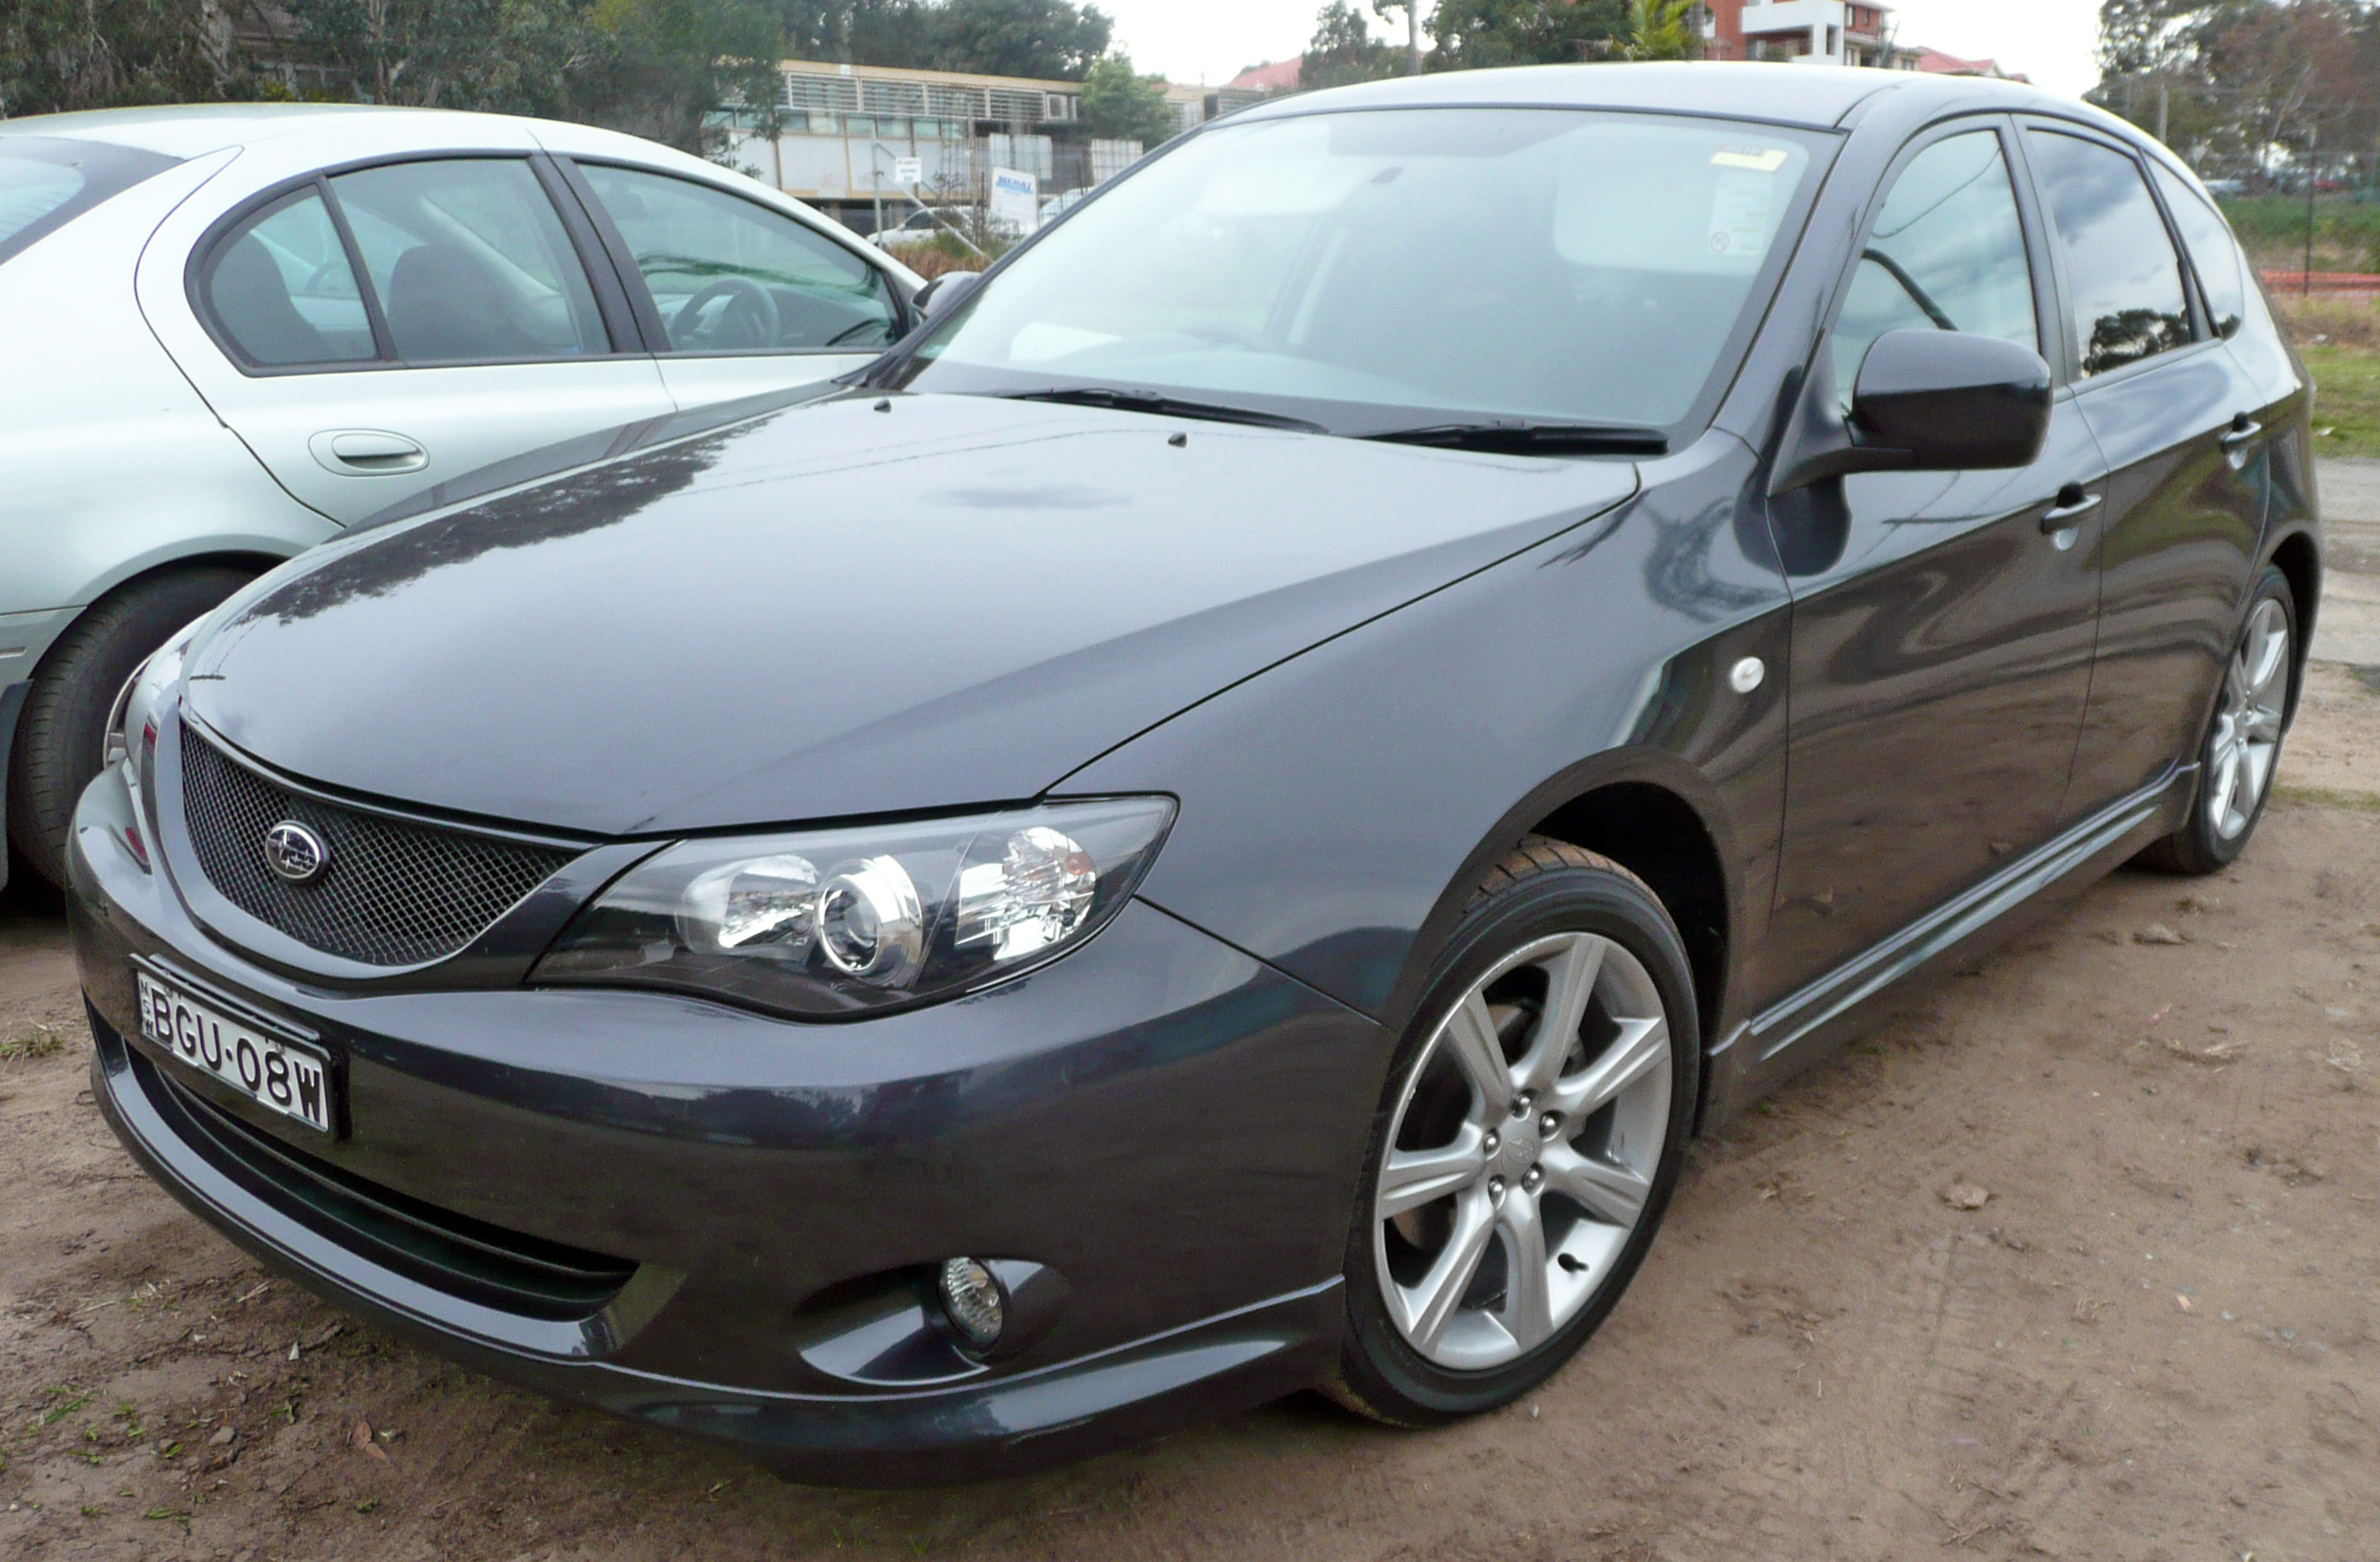 2008 Subaru Impreza GH7 MY08 RS hatchback % 08 21 01